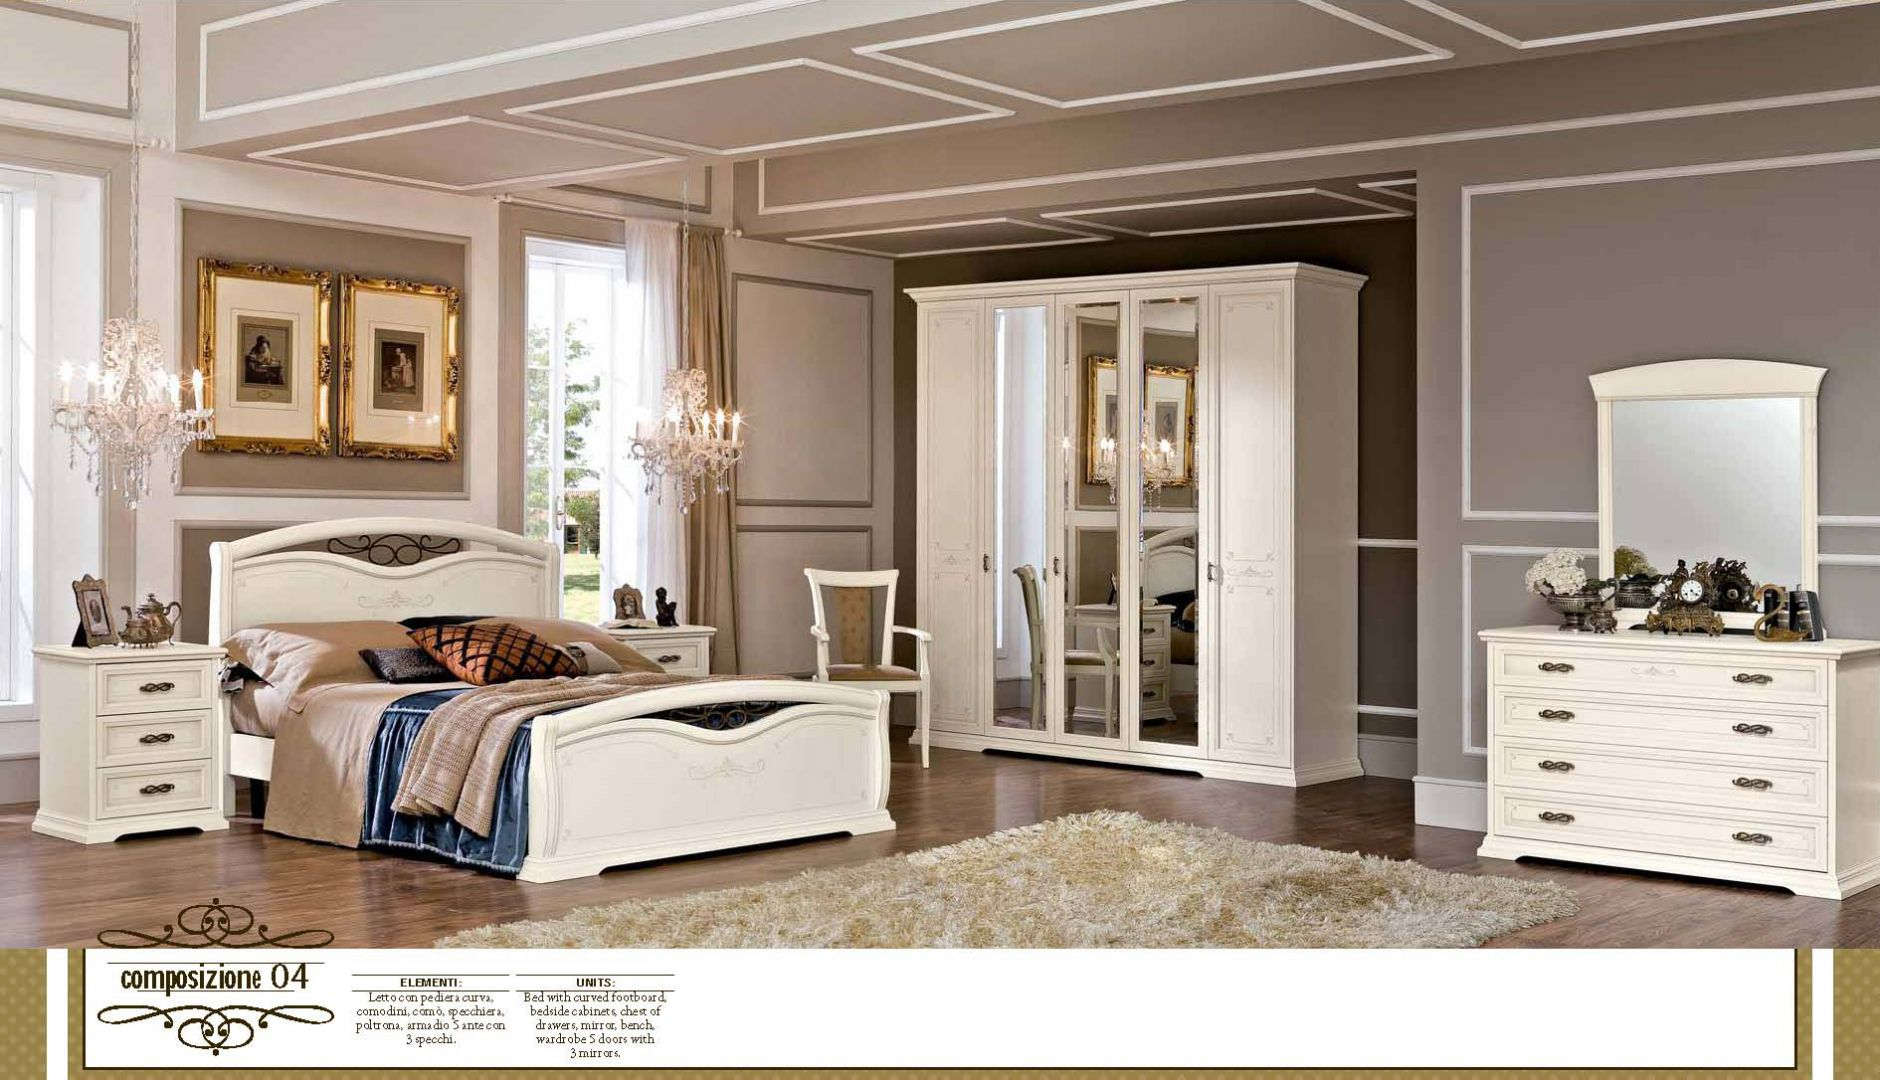 schlafzimmer acf serie afrodita komposition 4die m bel aus italien. Black Bedroom Furniture Sets. Home Design Ideas